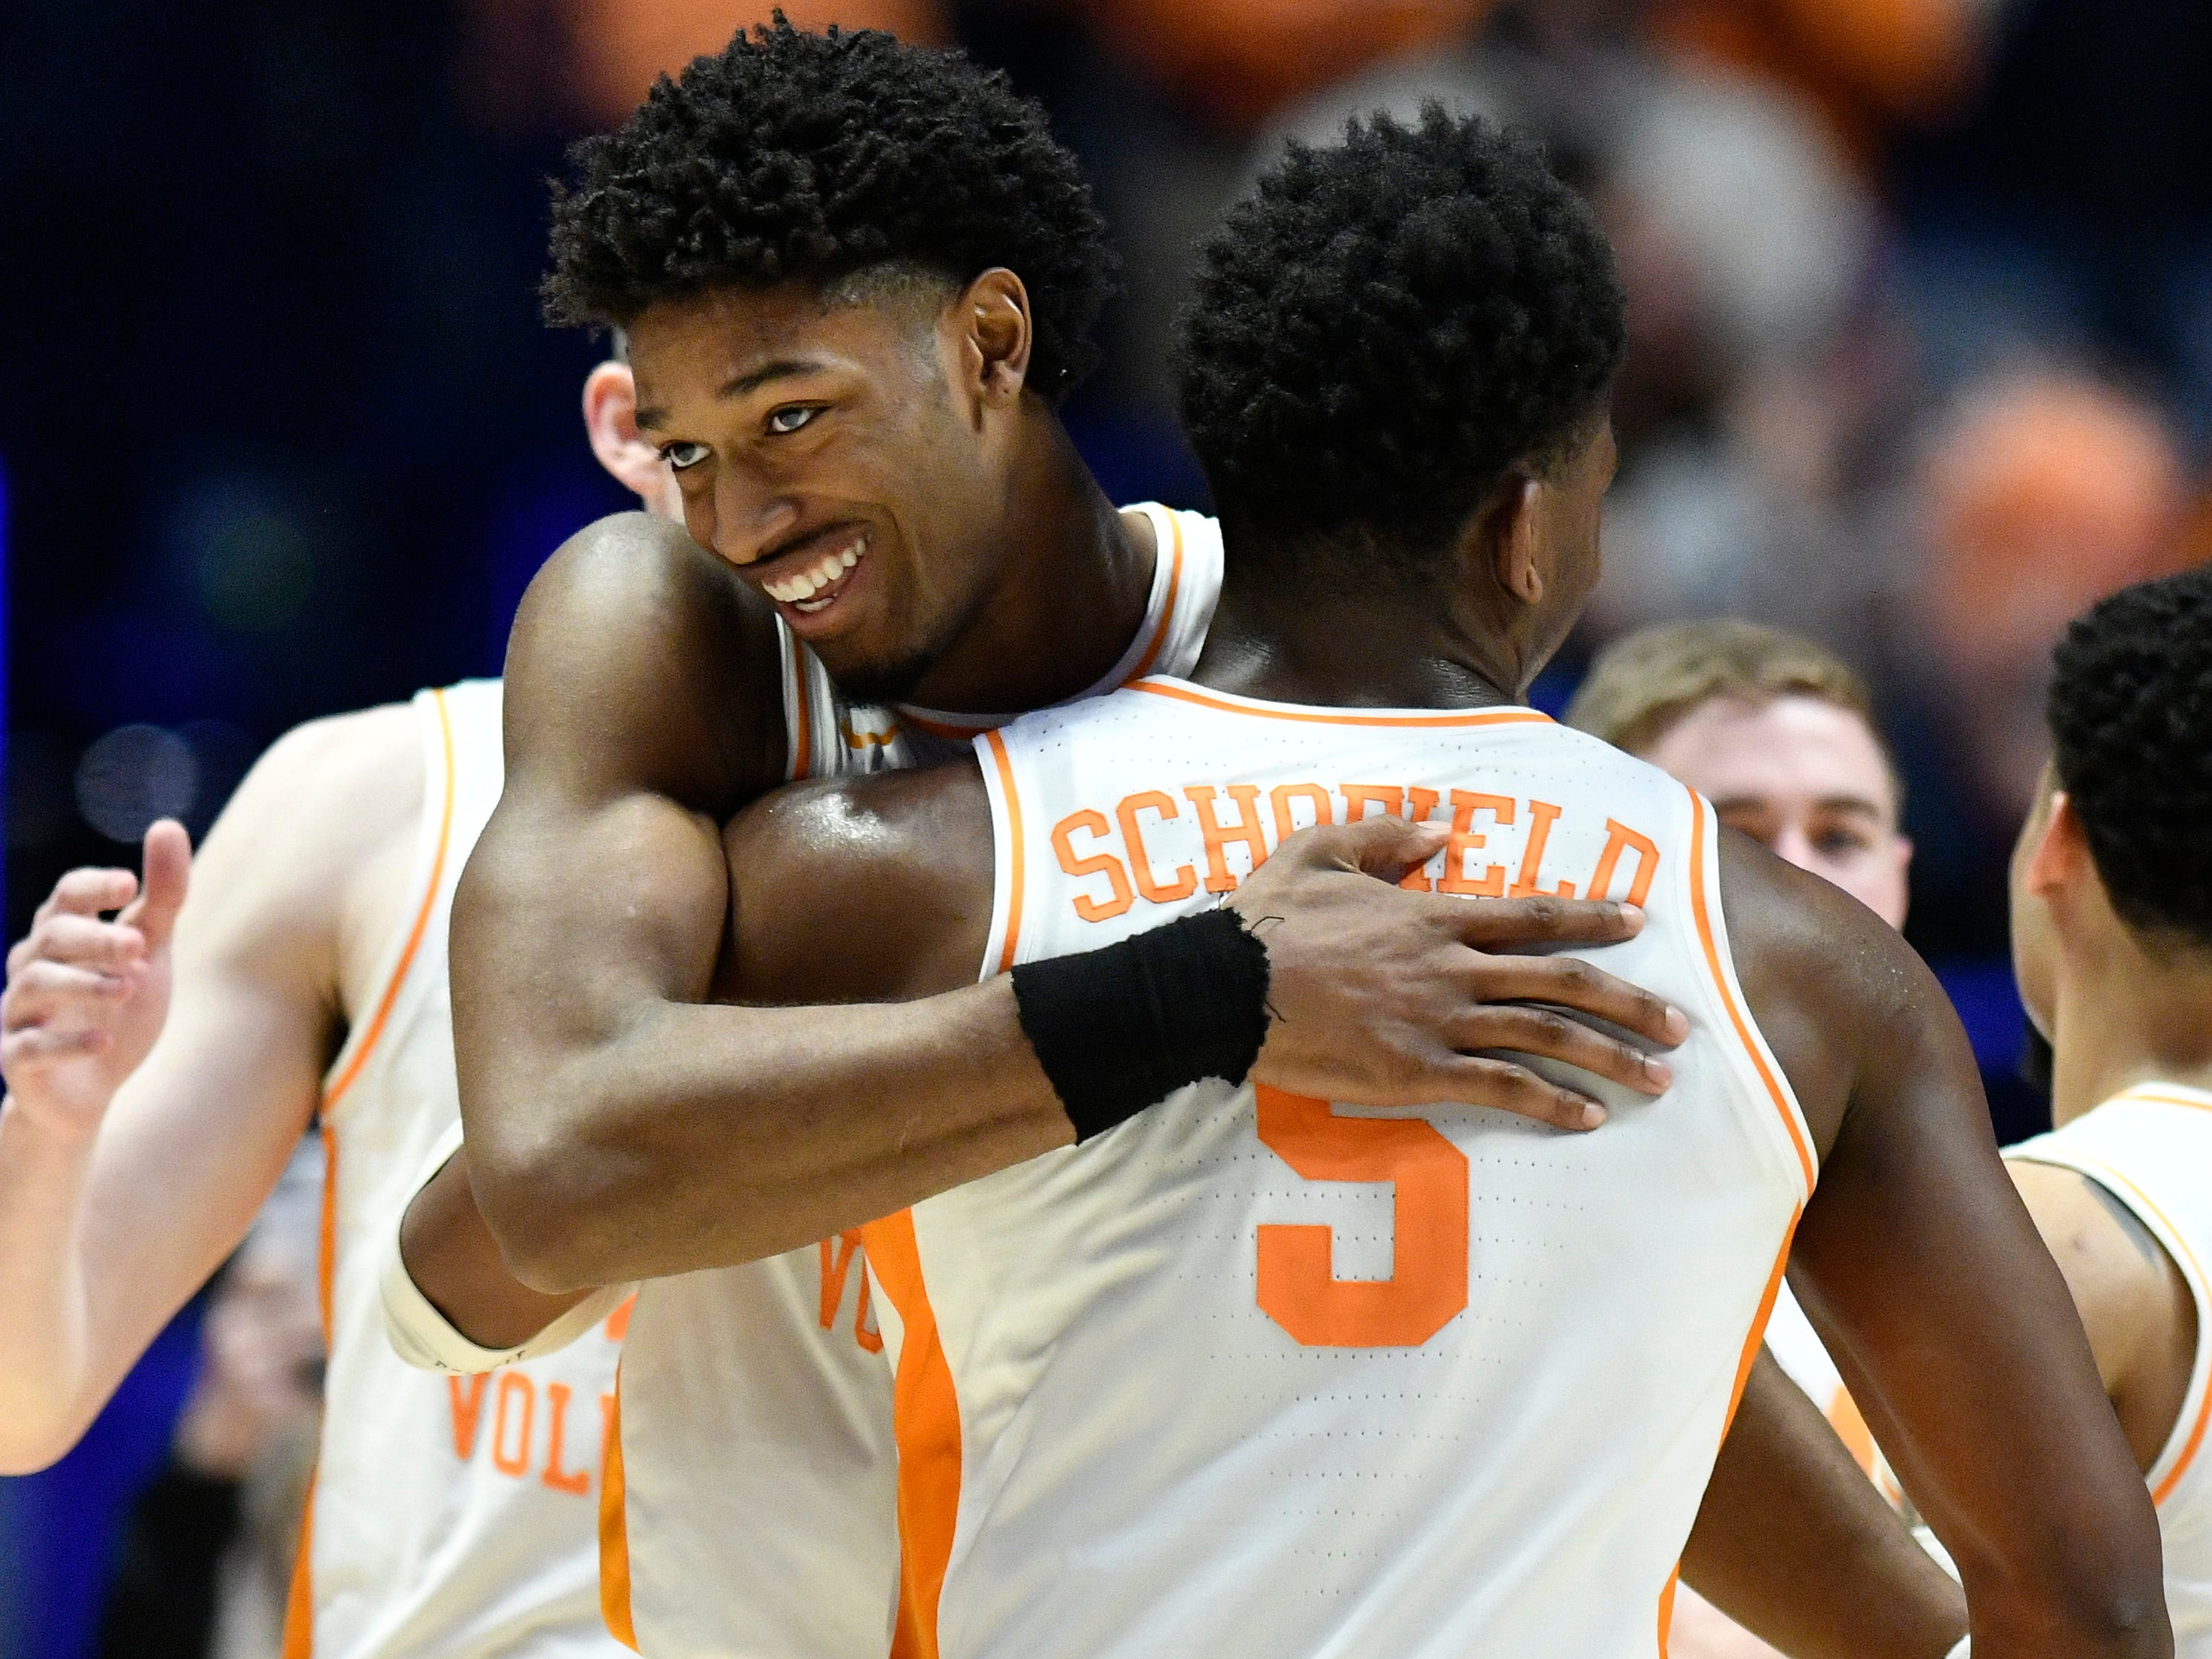 Tennessee forward Kyle Alexander (11) and guard Admiral Schofield (5) celebrate after the win over Mississippi State in the SEC Men's Basketball Tournament at Bridgestone Arena in Nashville, Tenn., Friday, March 15, 2019.